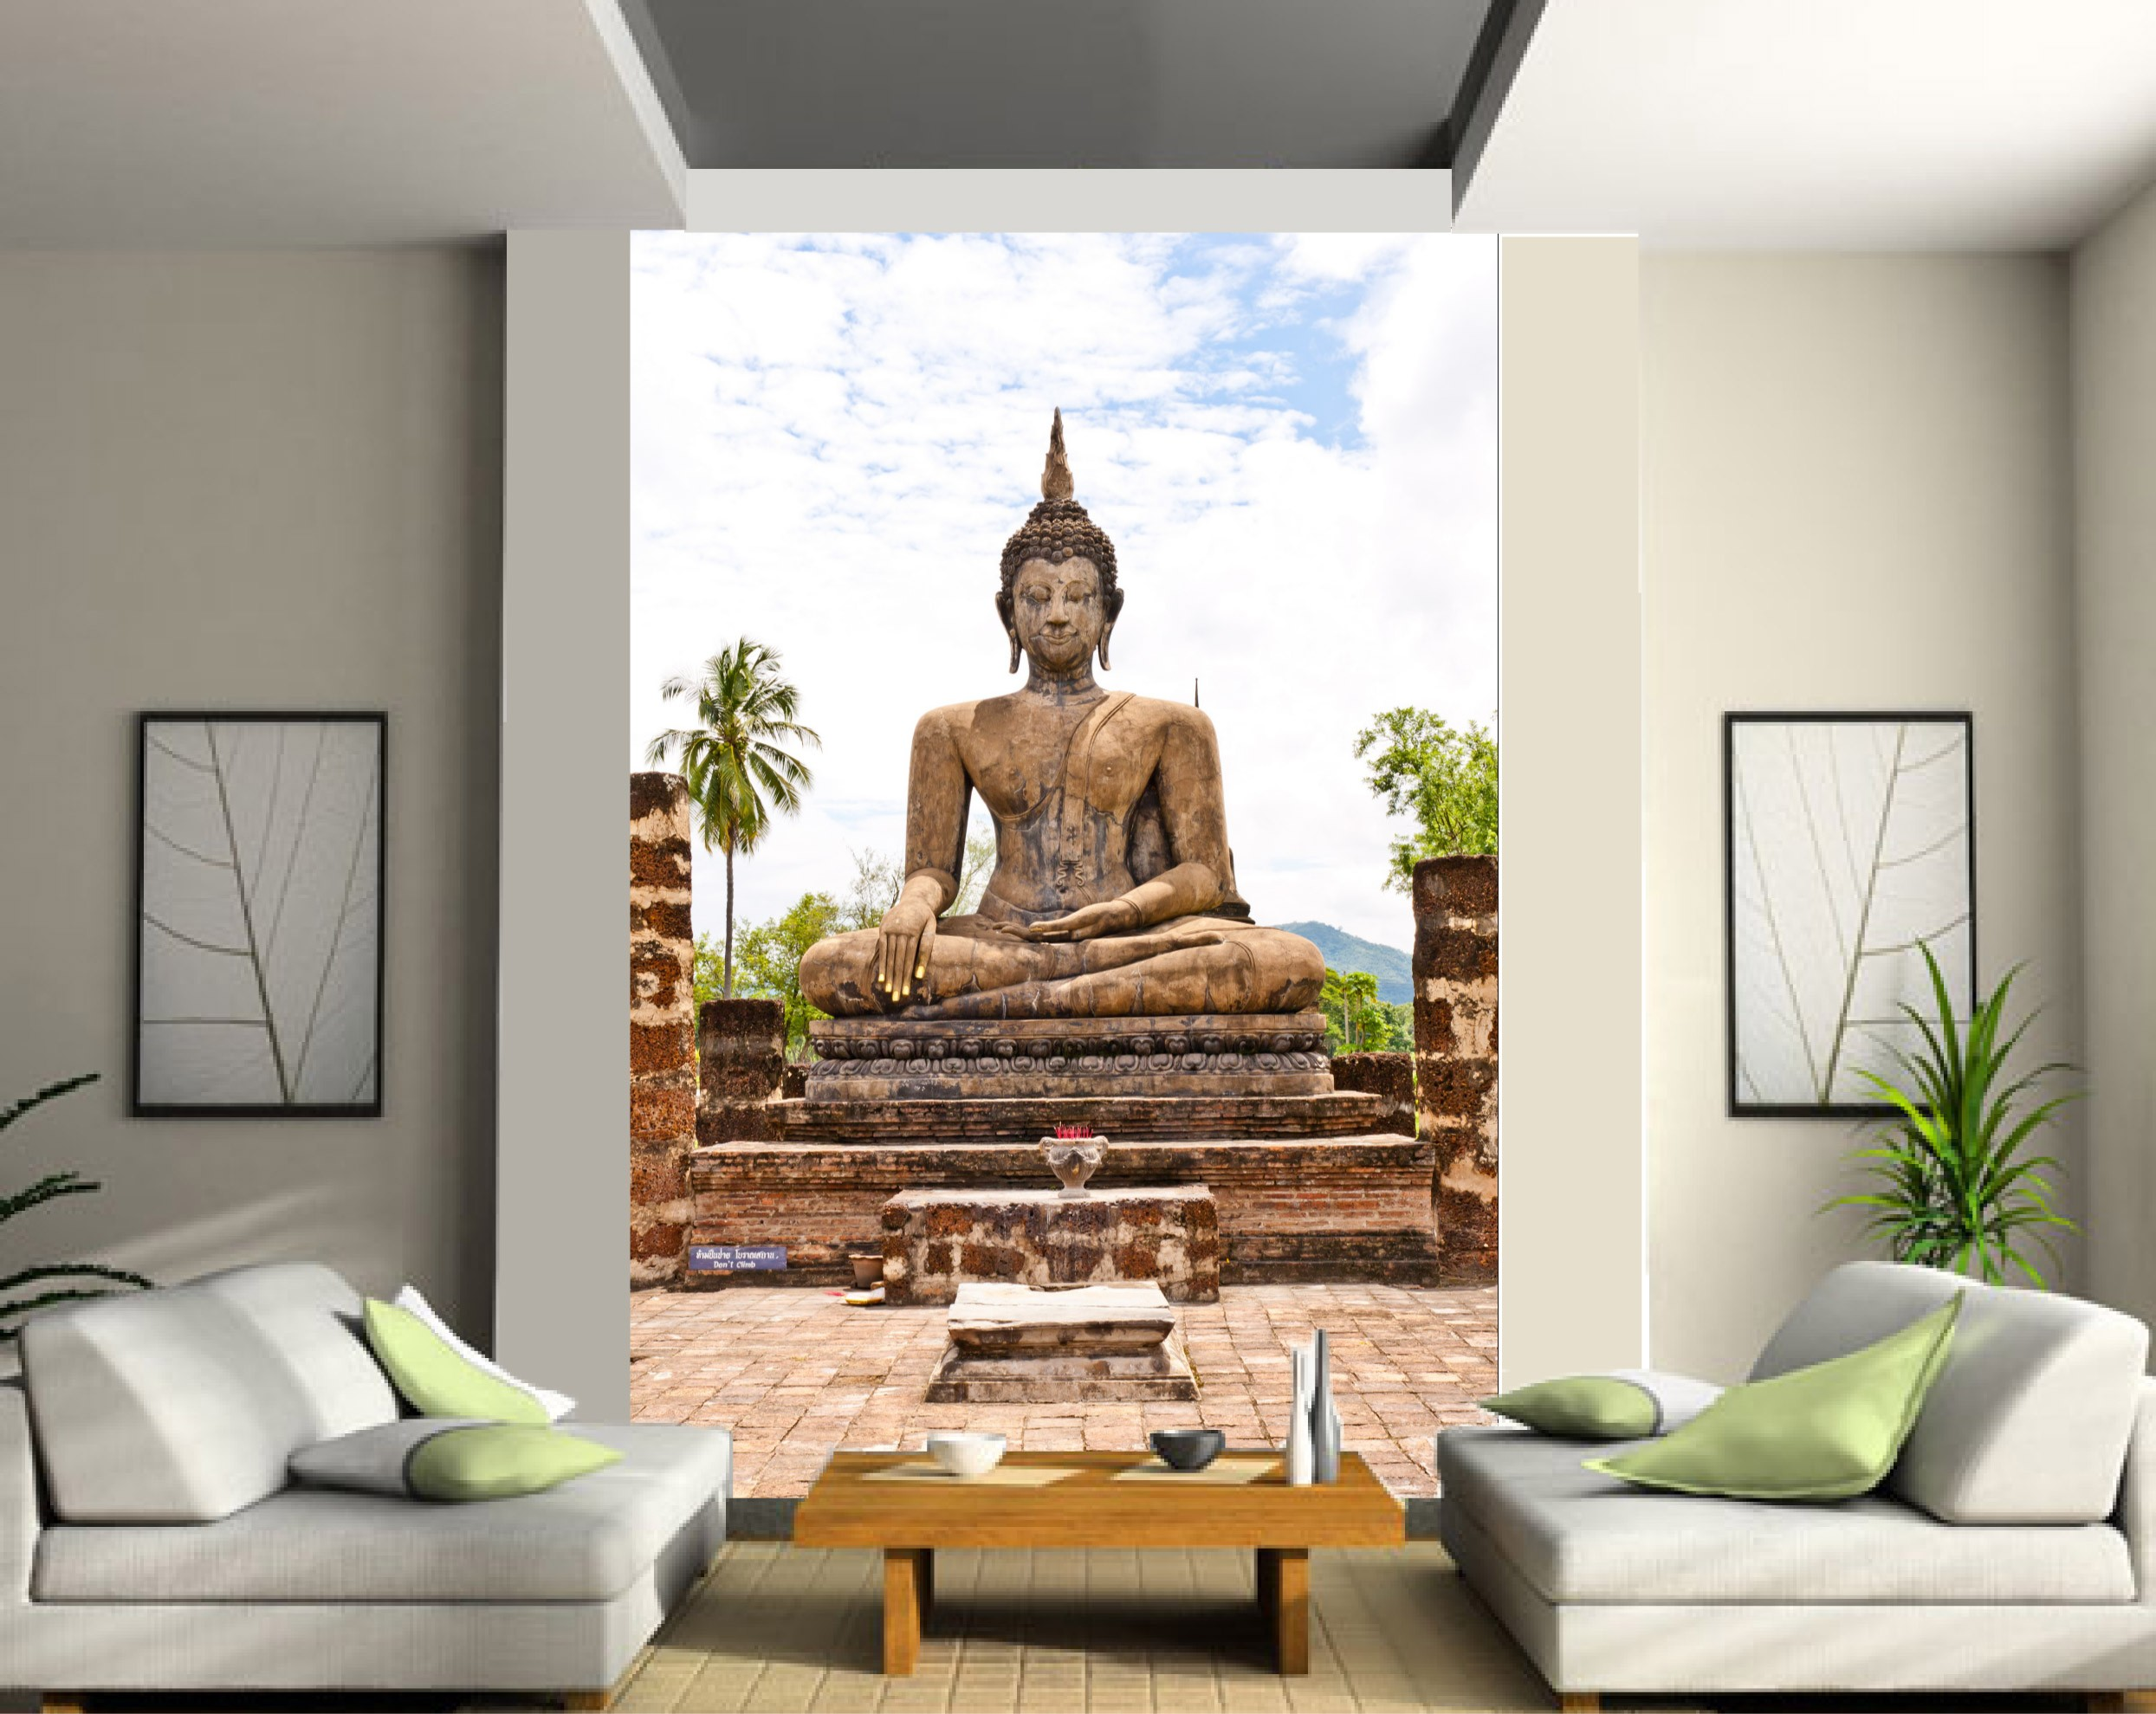 deco bouddha bouddha deco jardin decoration bouddha exterieur decoration bouddha statue. Black Bedroom Furniture Sets. Home Design Ideas